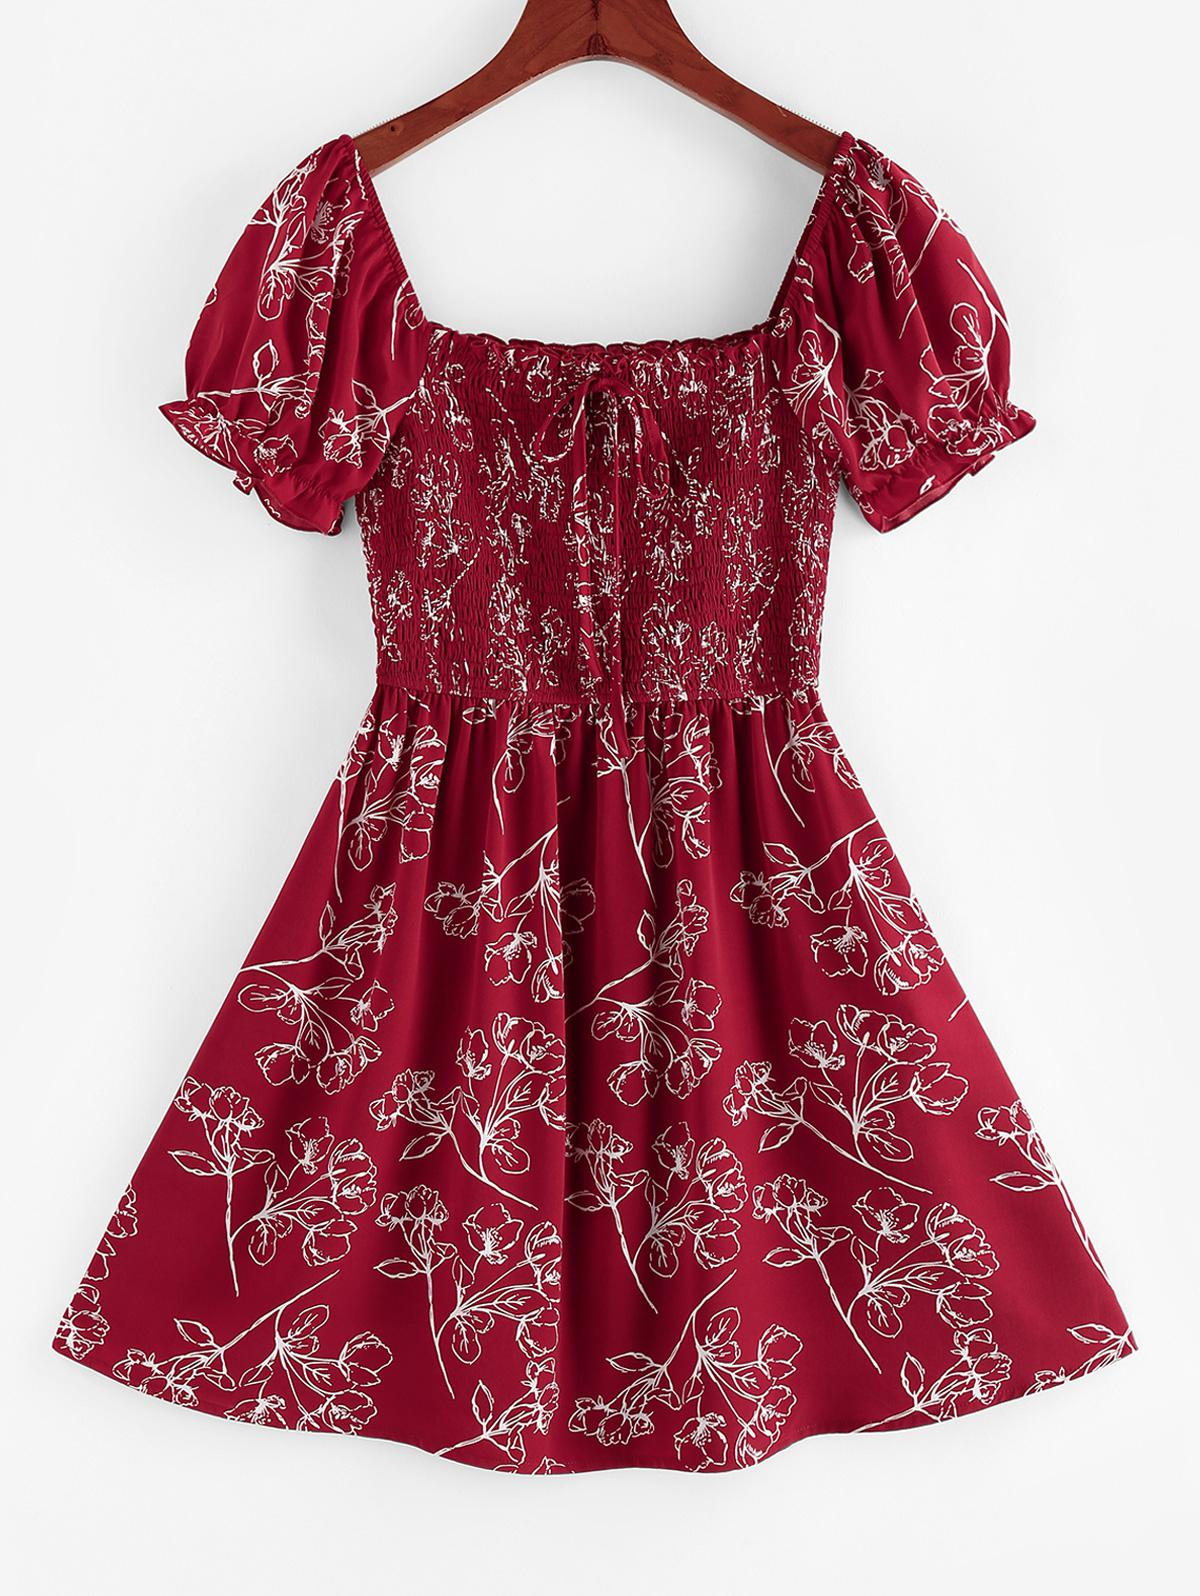 ZAFUL Flower Shirred Ruffle Bowknot Mini Dress фото